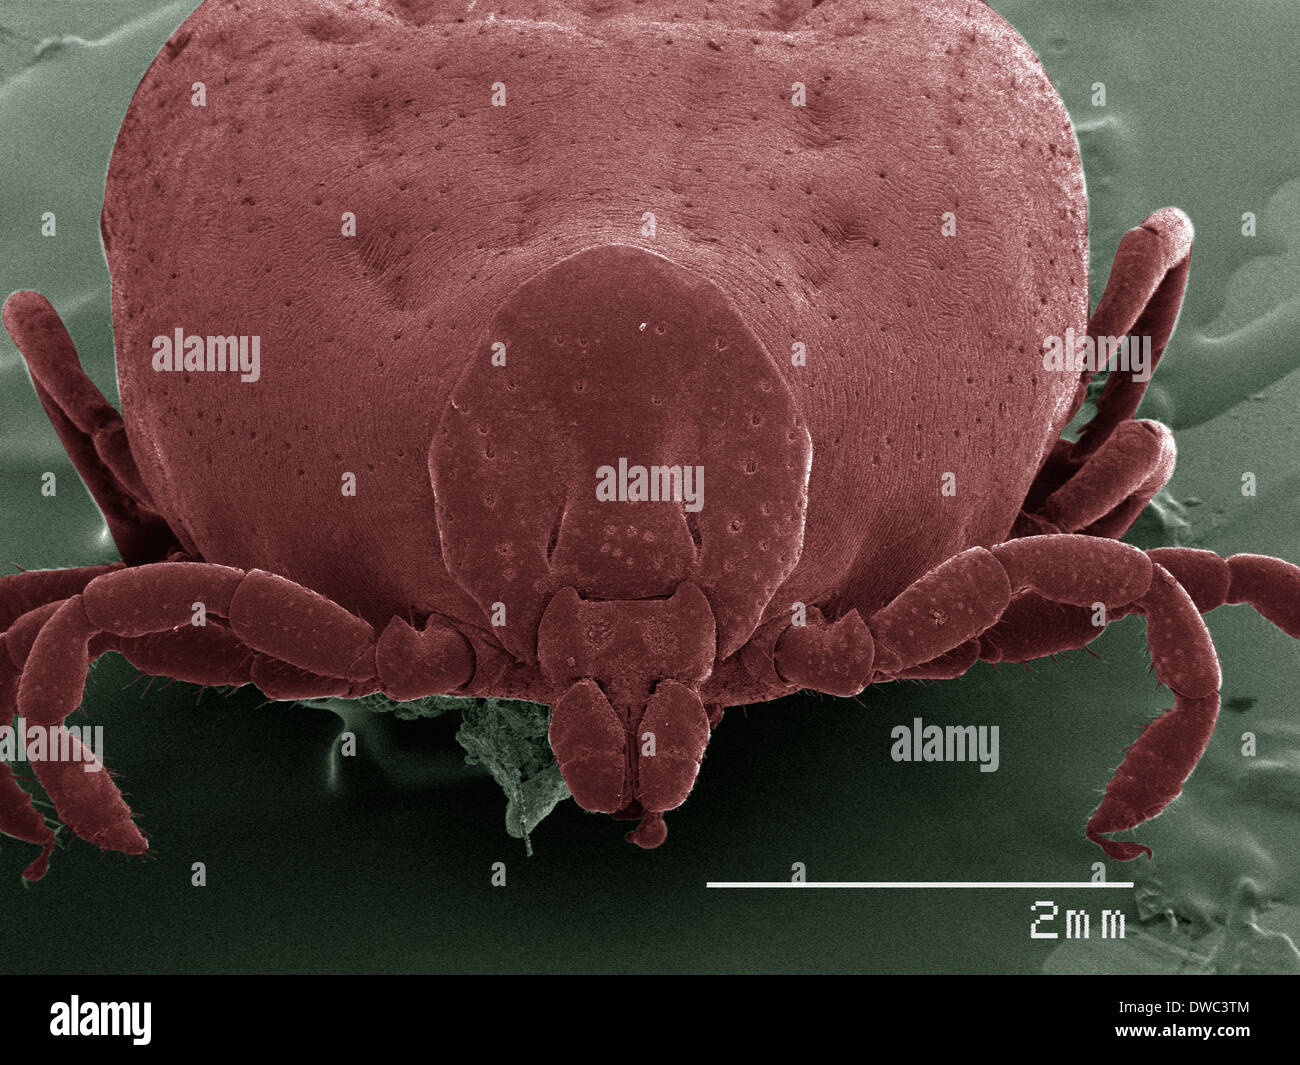 Coloured SEM of tick, front view - Stock Image